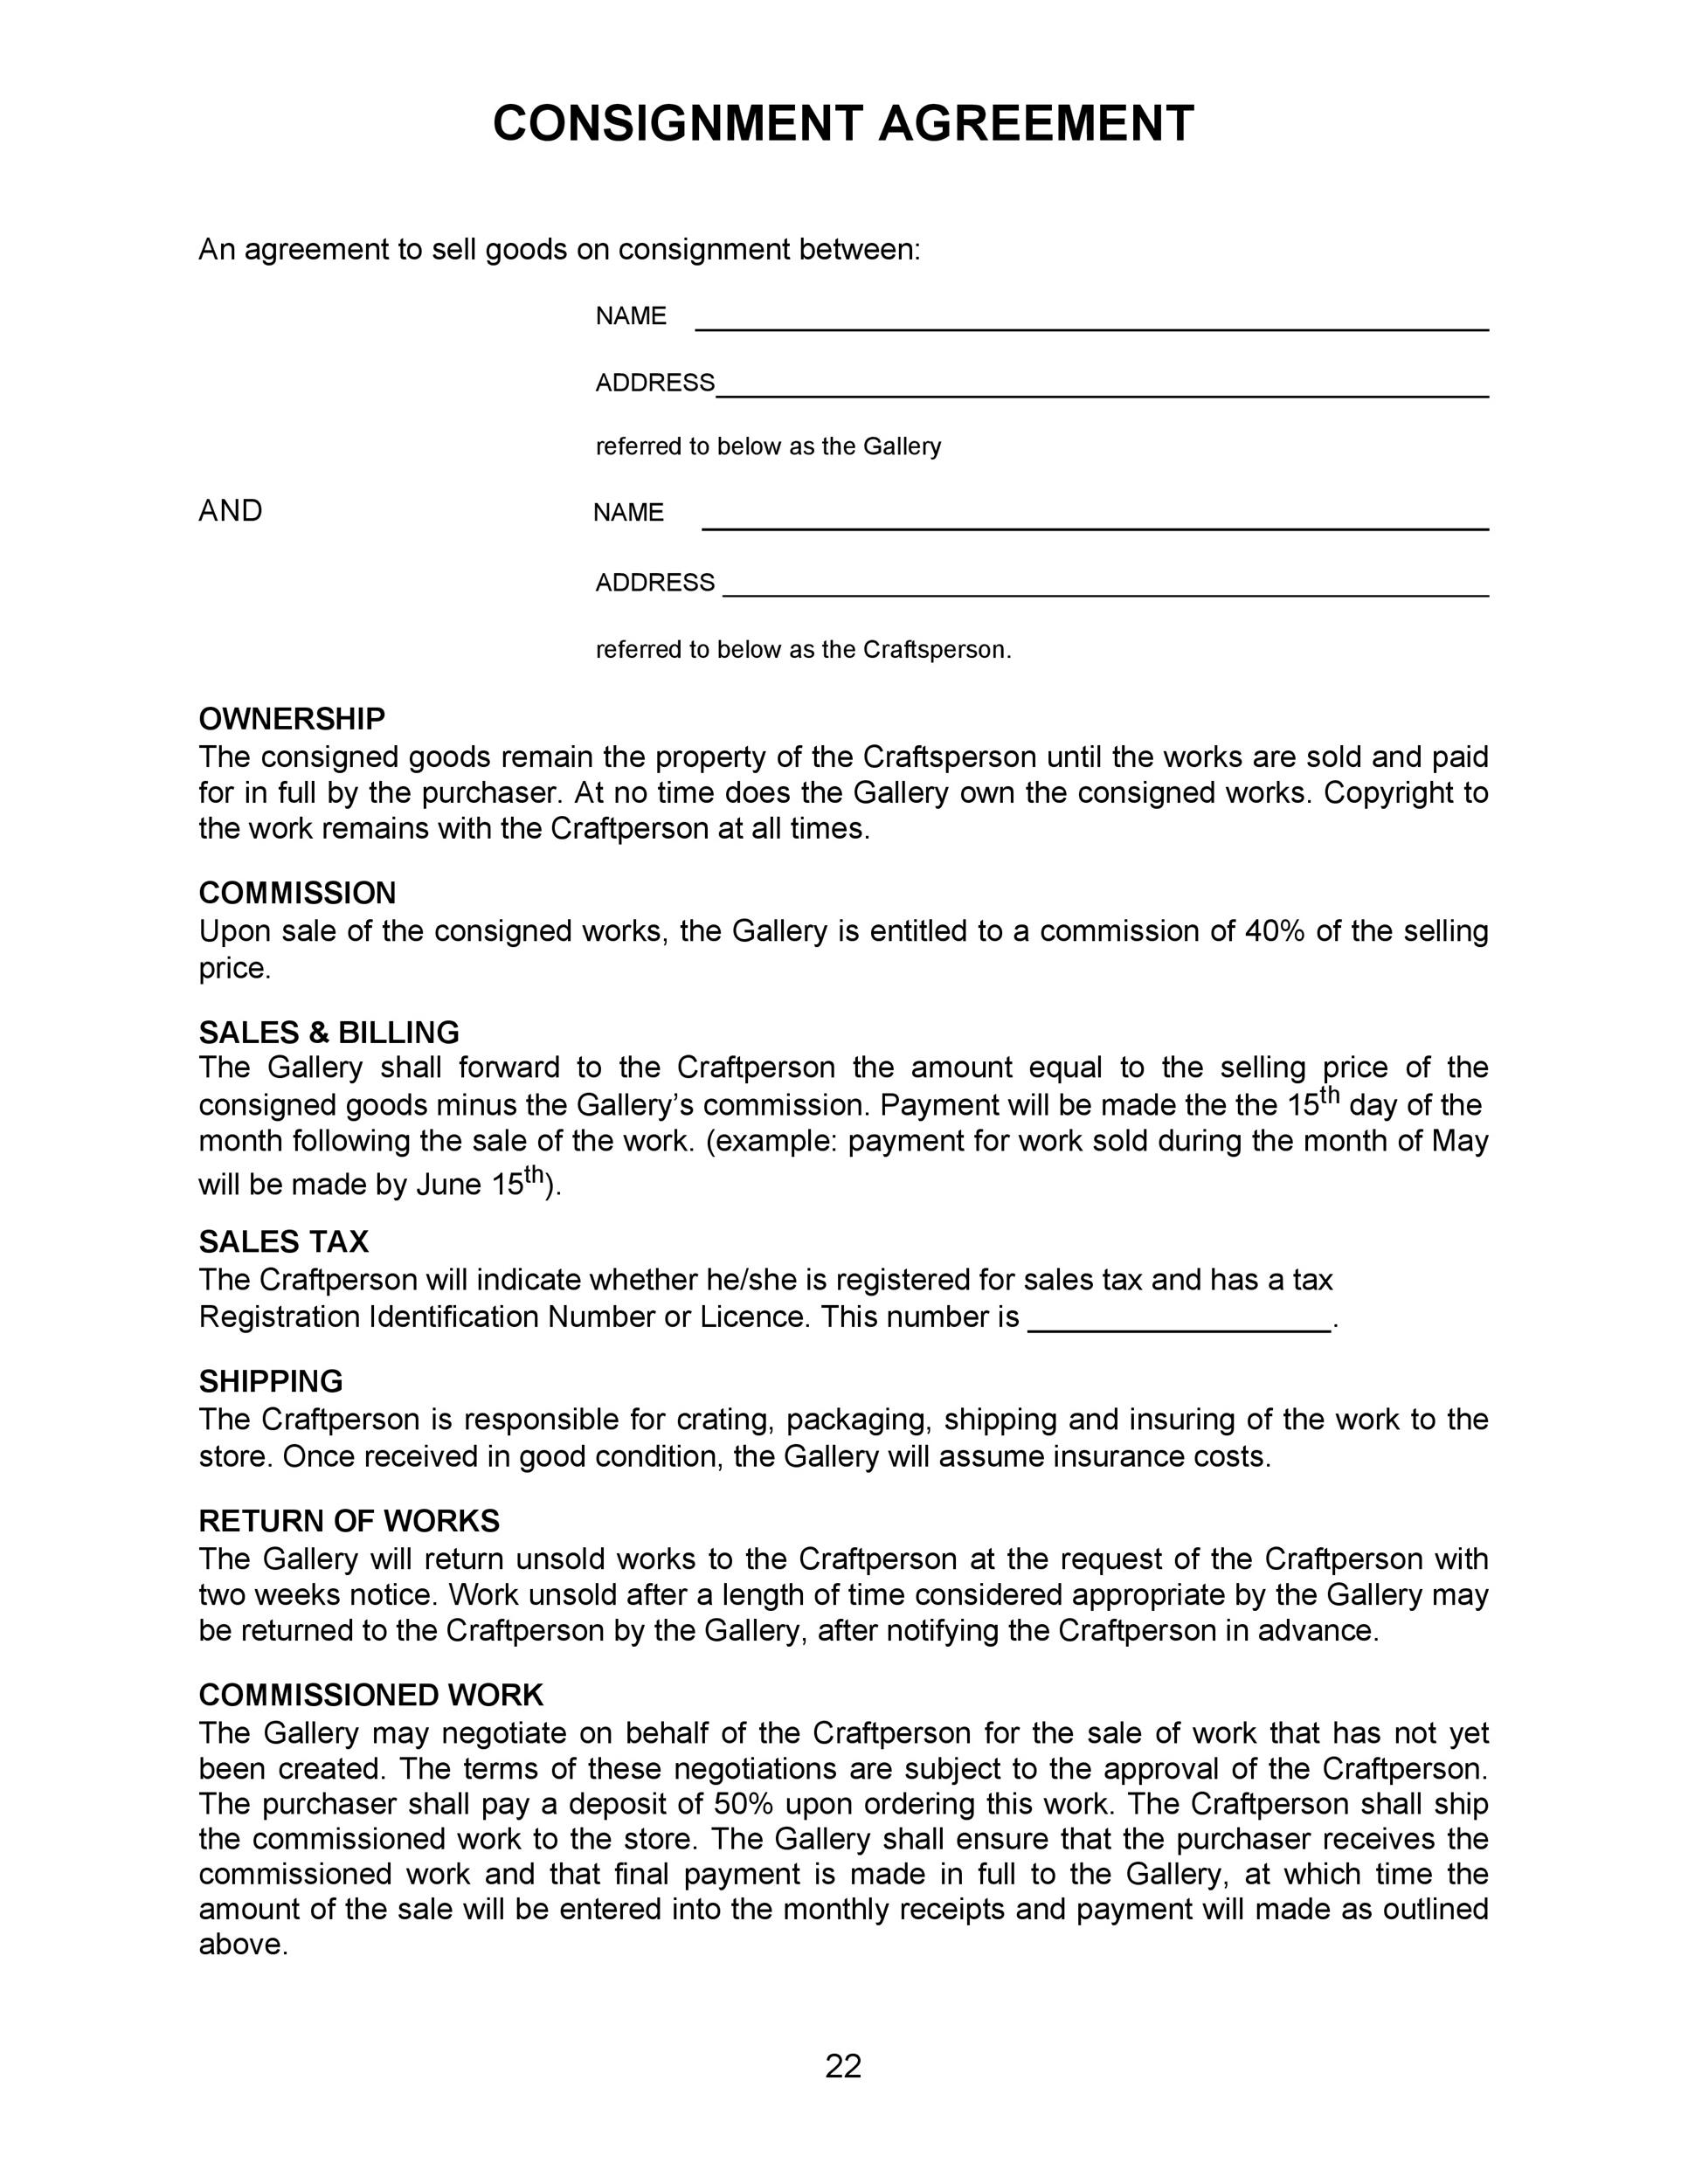 Free Consignment Agreement Template 26